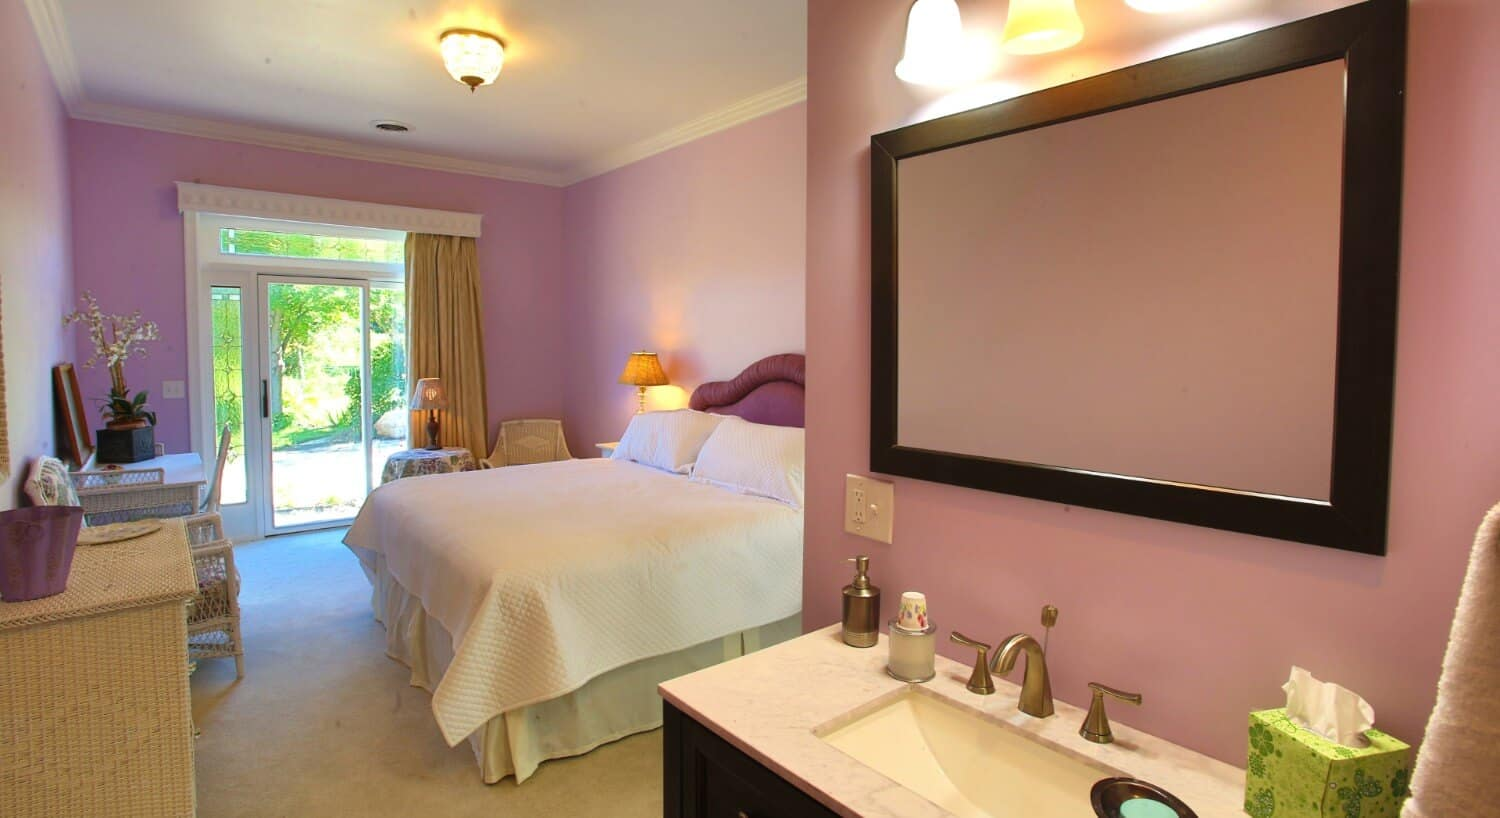 Light filled bedroom with lavender walls and a french door holds a bed with a purple upholstered headboard.